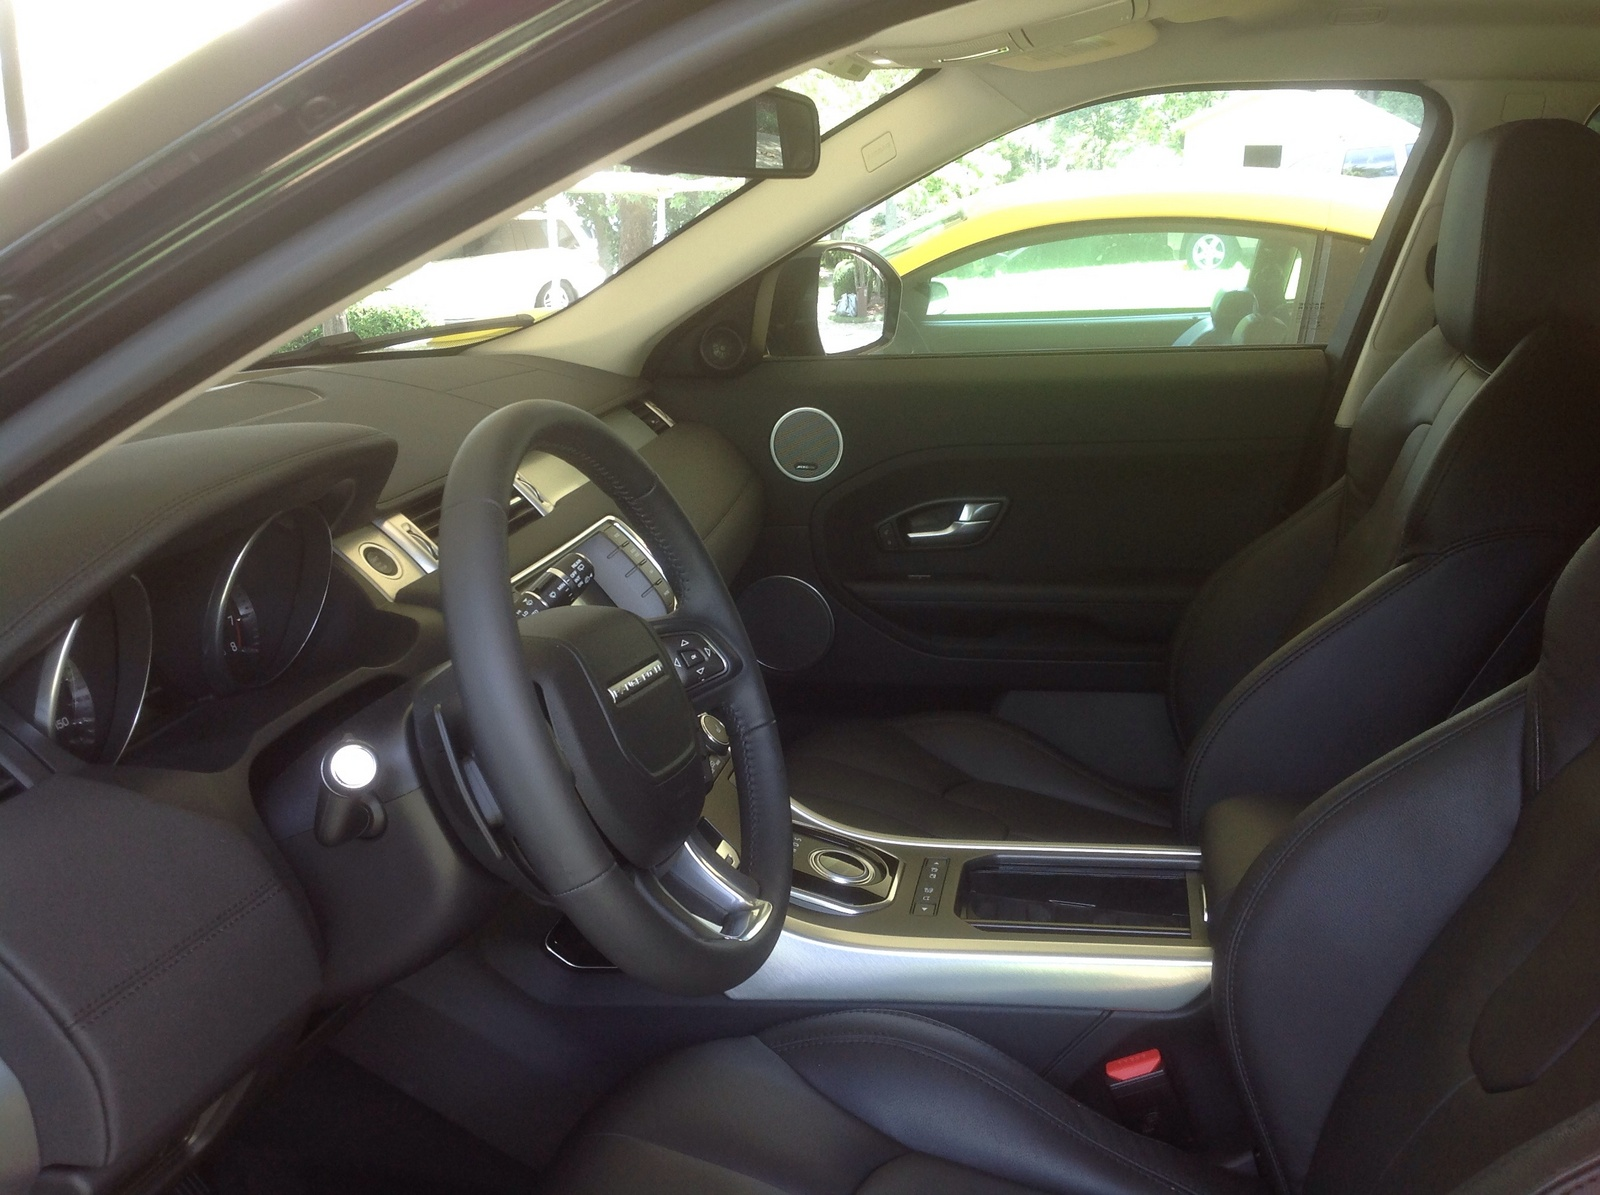 Picture of 2014 Land Rover Range Rover Evoque Pure Plus Hatchback